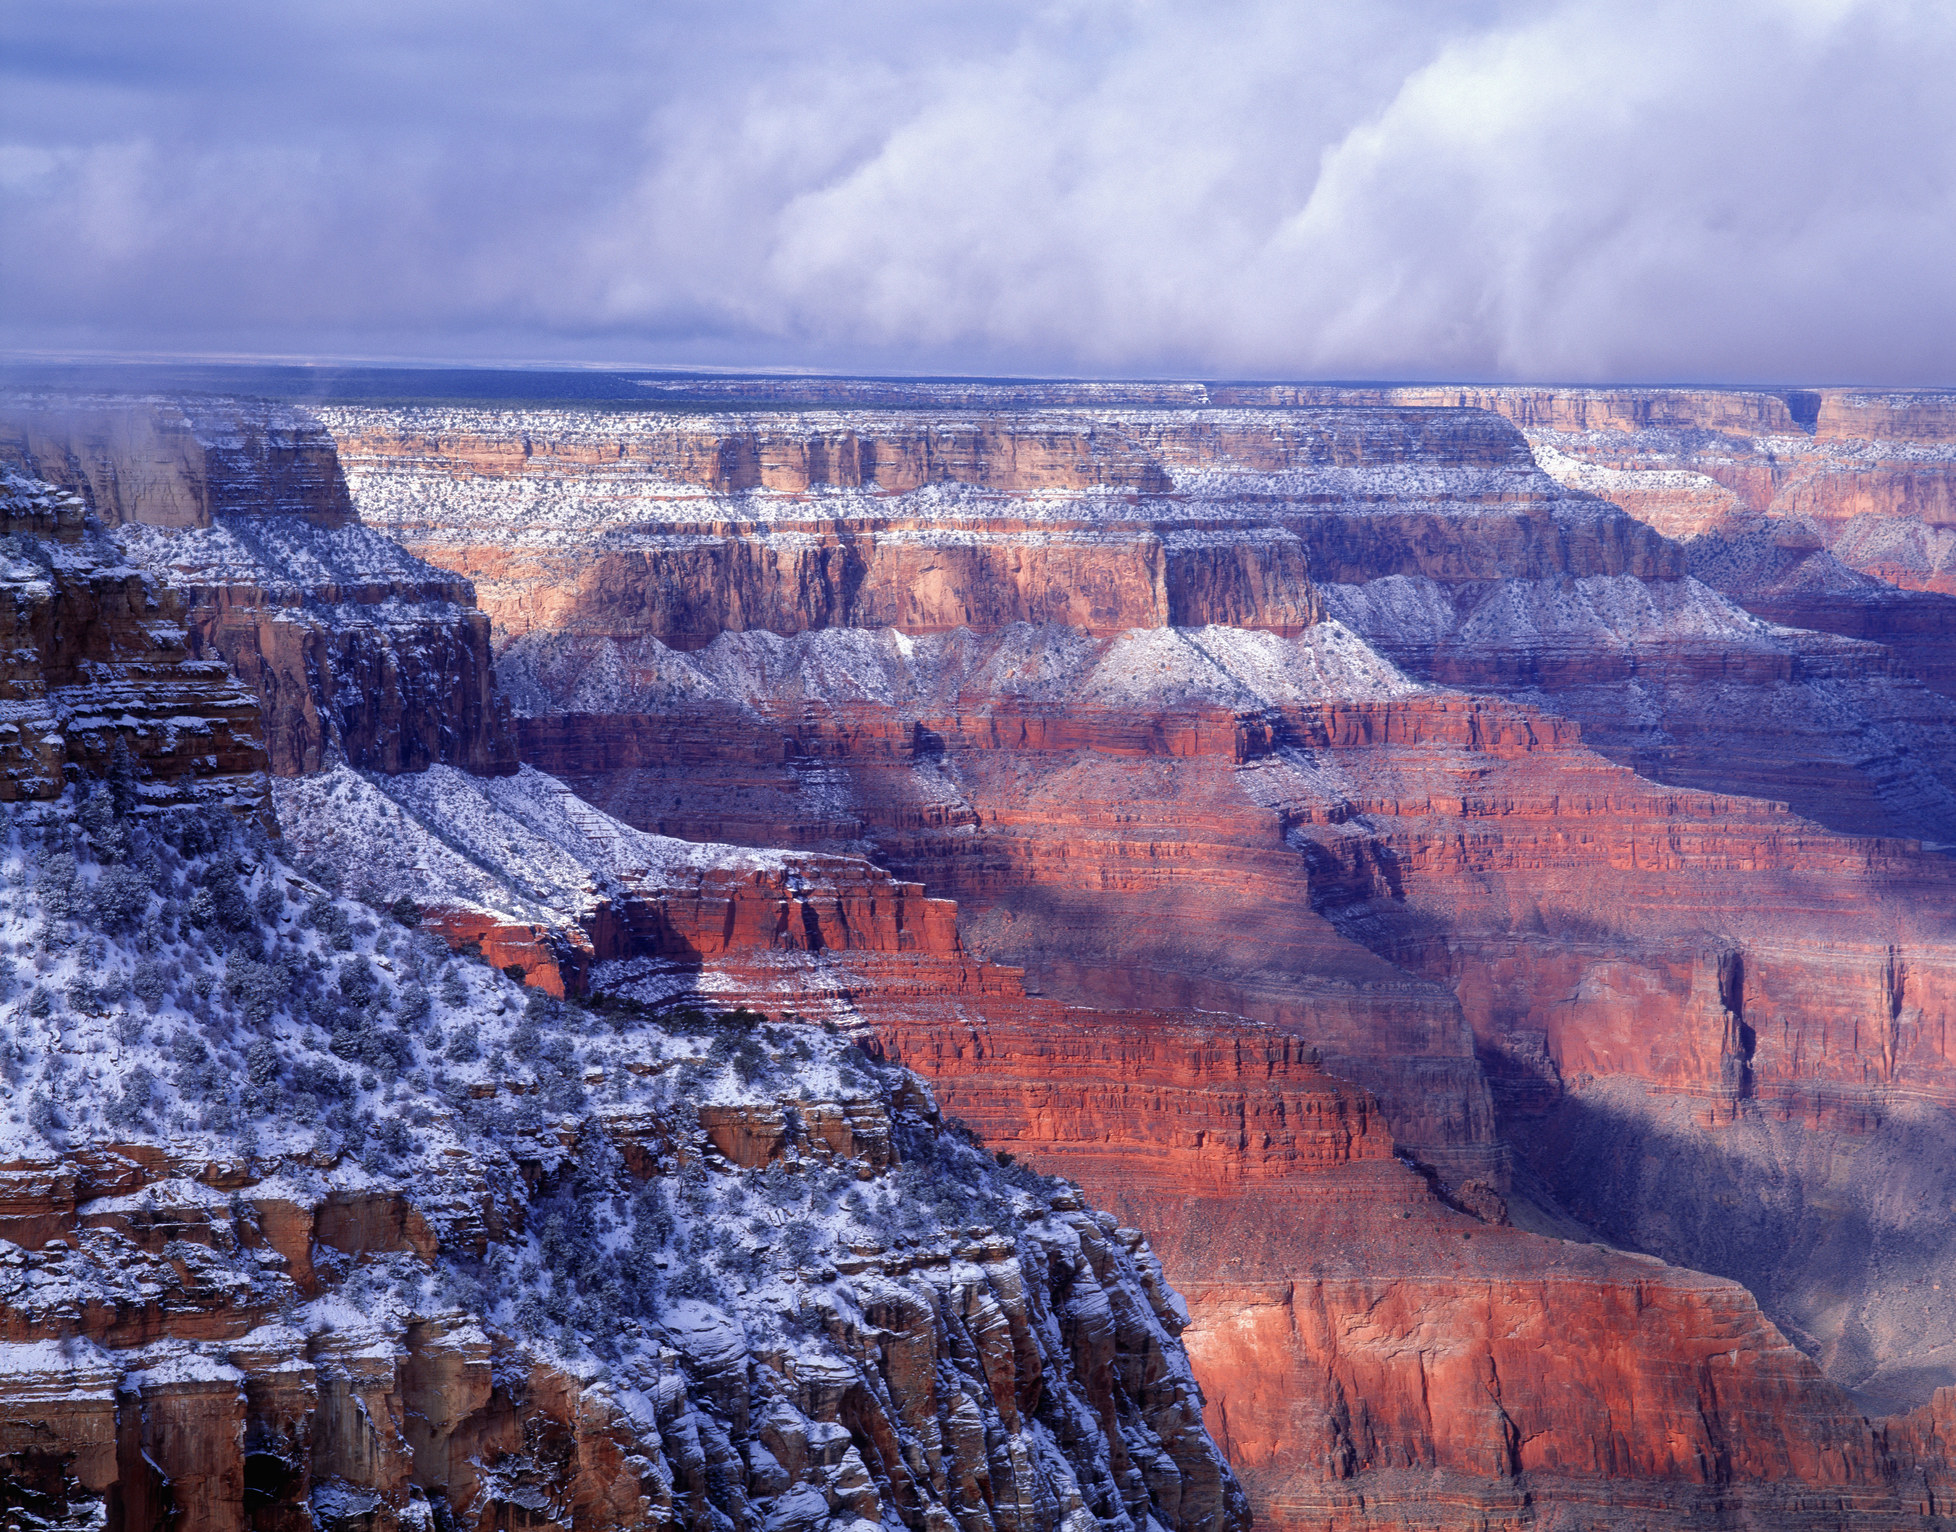 red rocky cliffs of the grand canyon dusted with snow